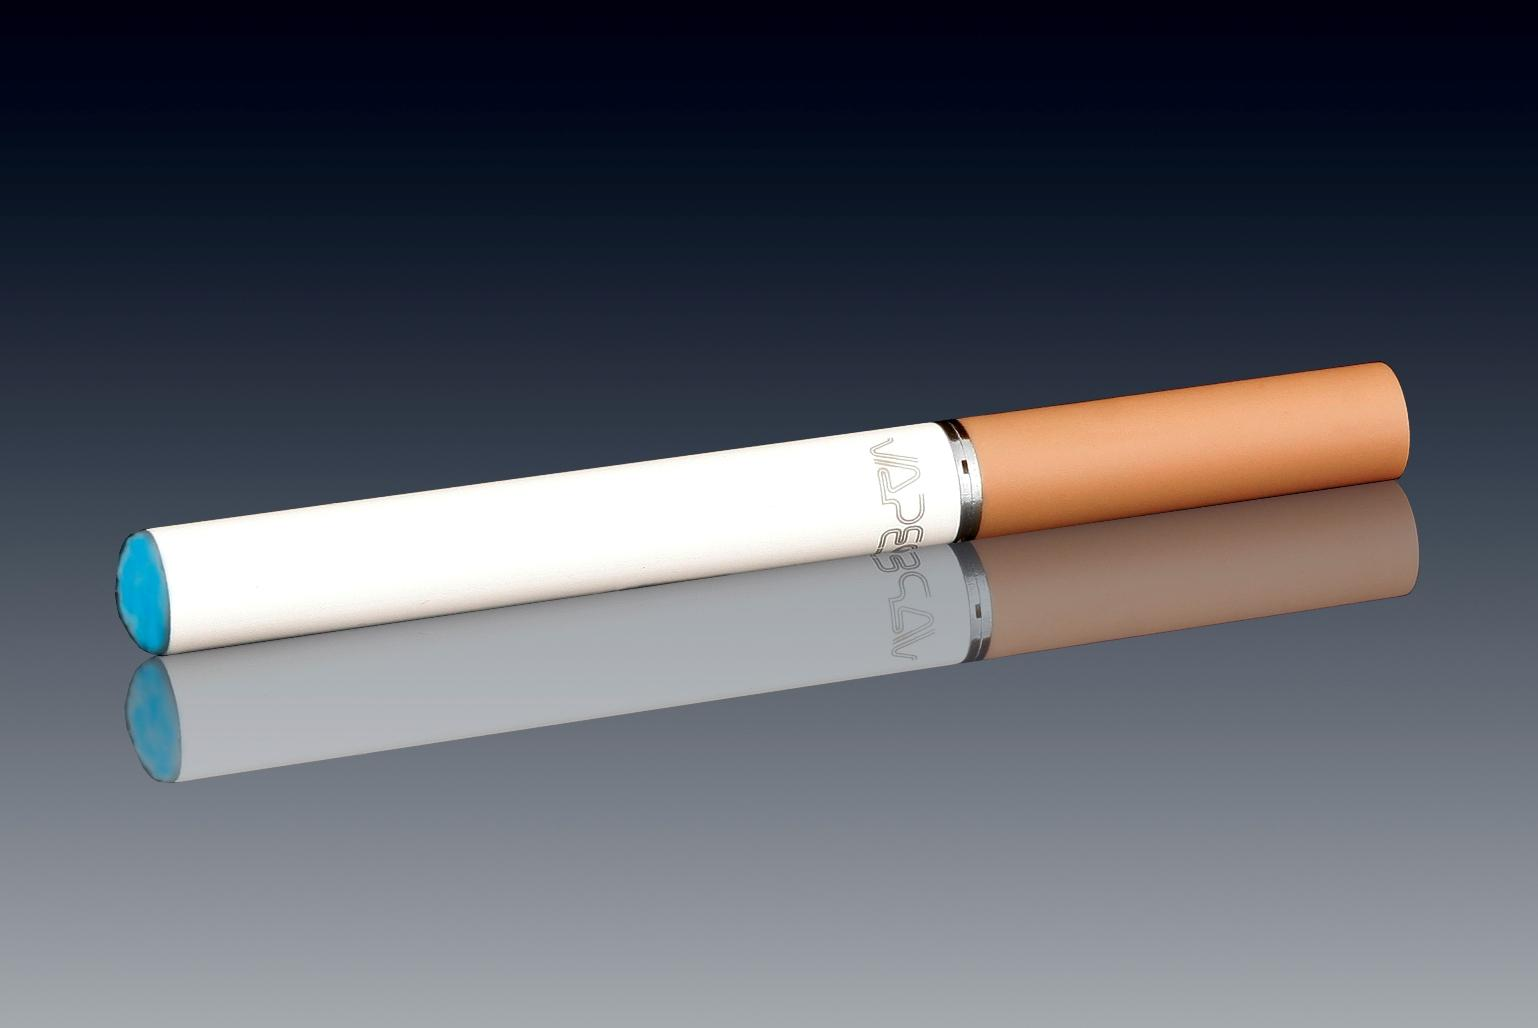 Are electronic cigarettes allowed in Australia